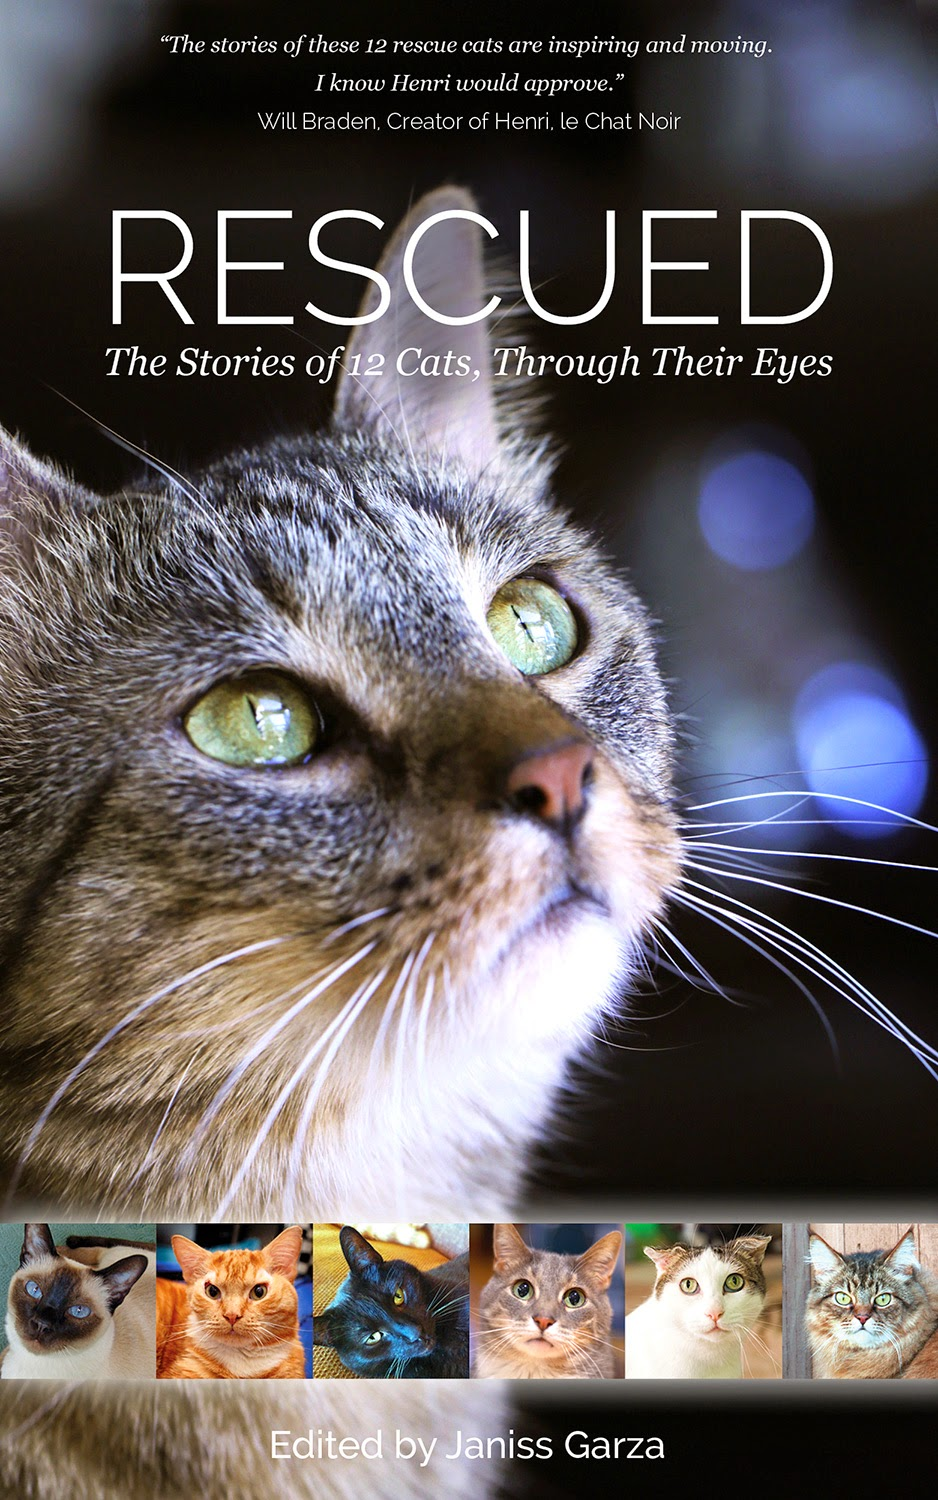 Last Day, Support Authors and Animal Charities